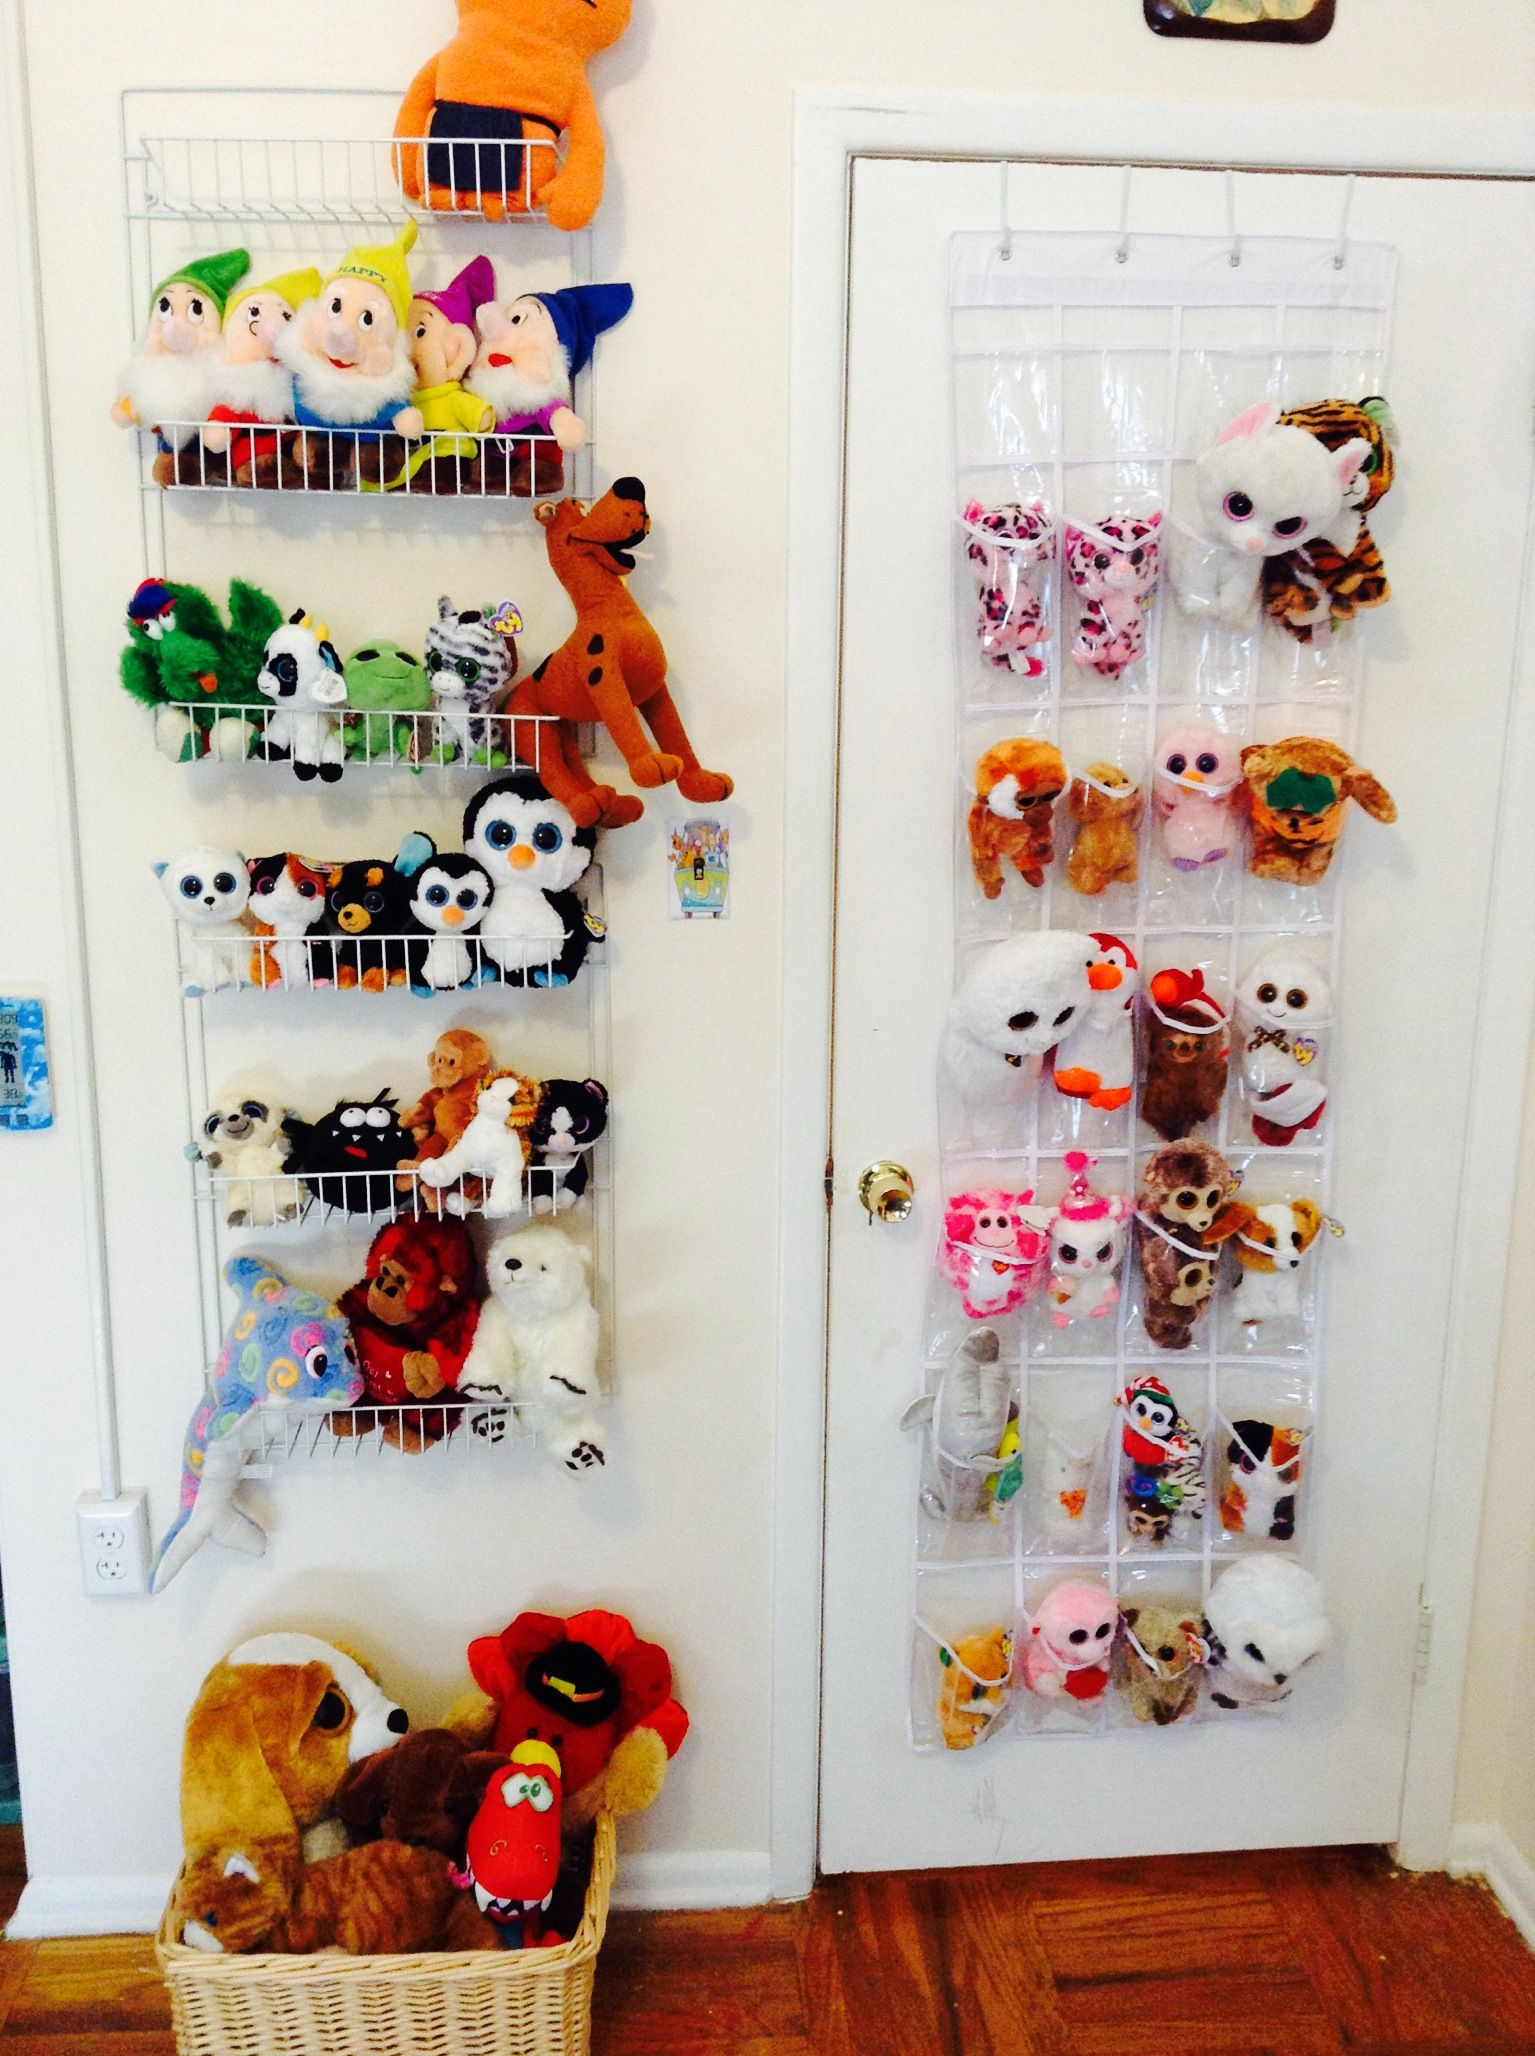 8 Kids Storage And Organization Ideas: Over The Door Shelves Make GREAT Stuffed Animal Storage